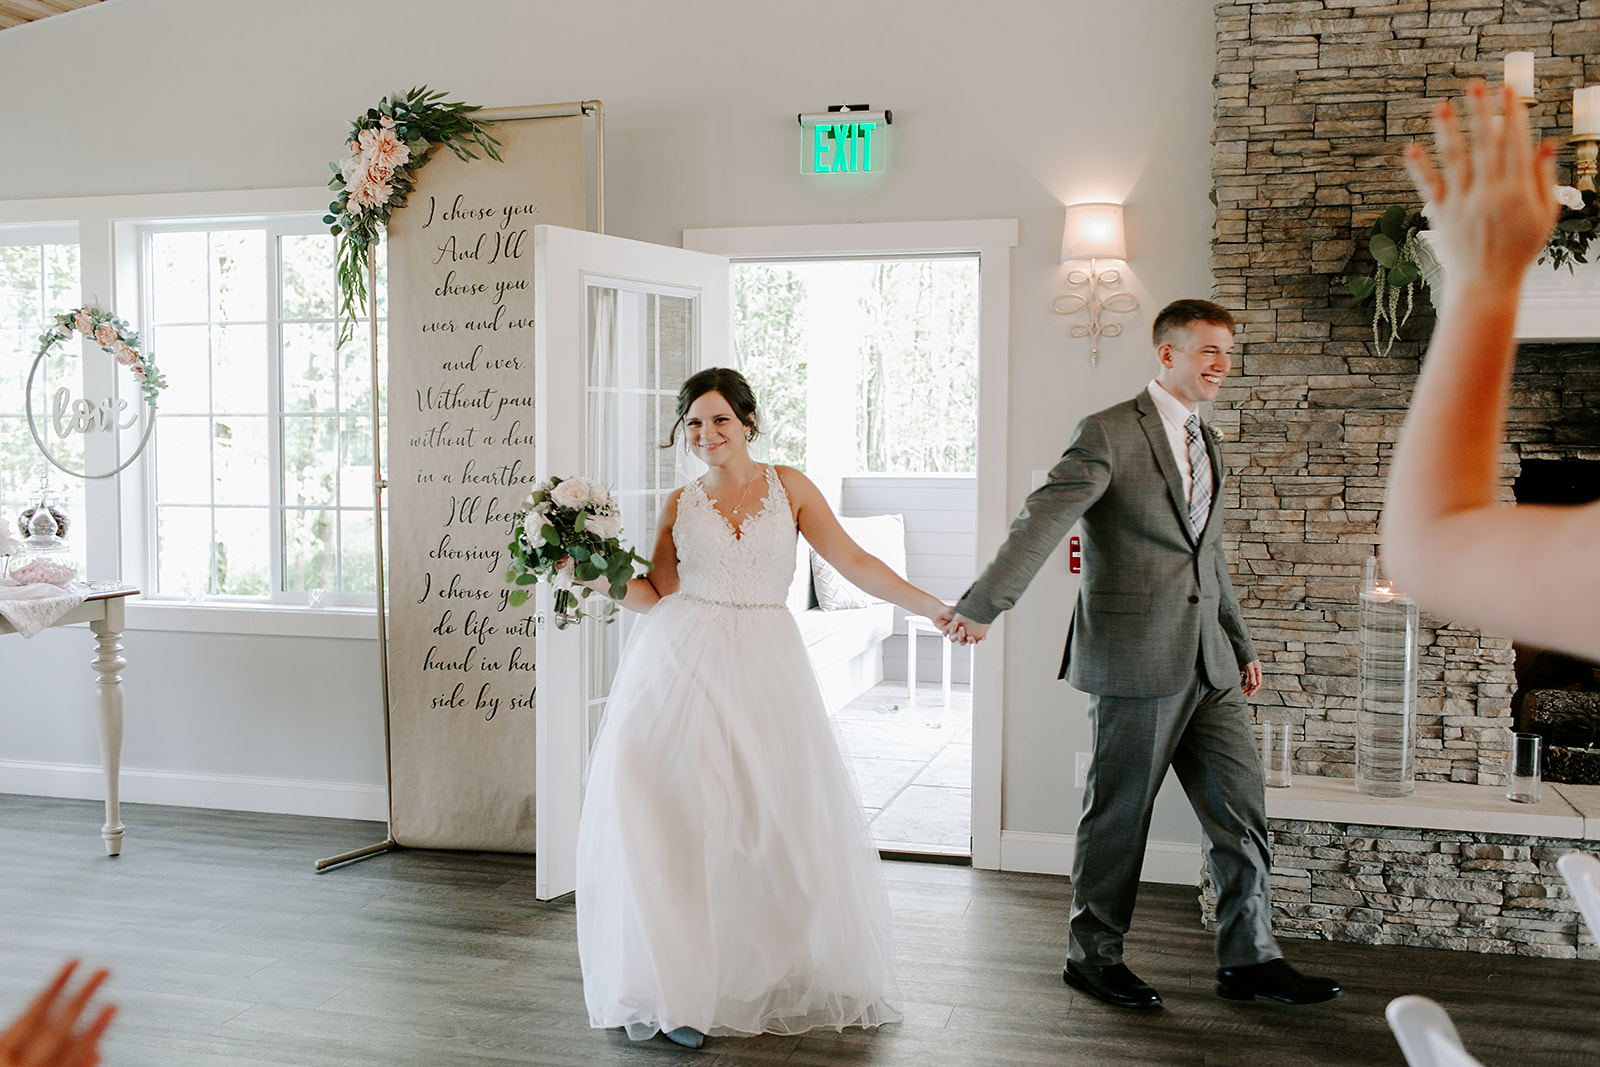 Kendra_and_Mattew_Indiana_Wedding_by_Emily_Wehner-695.jpg